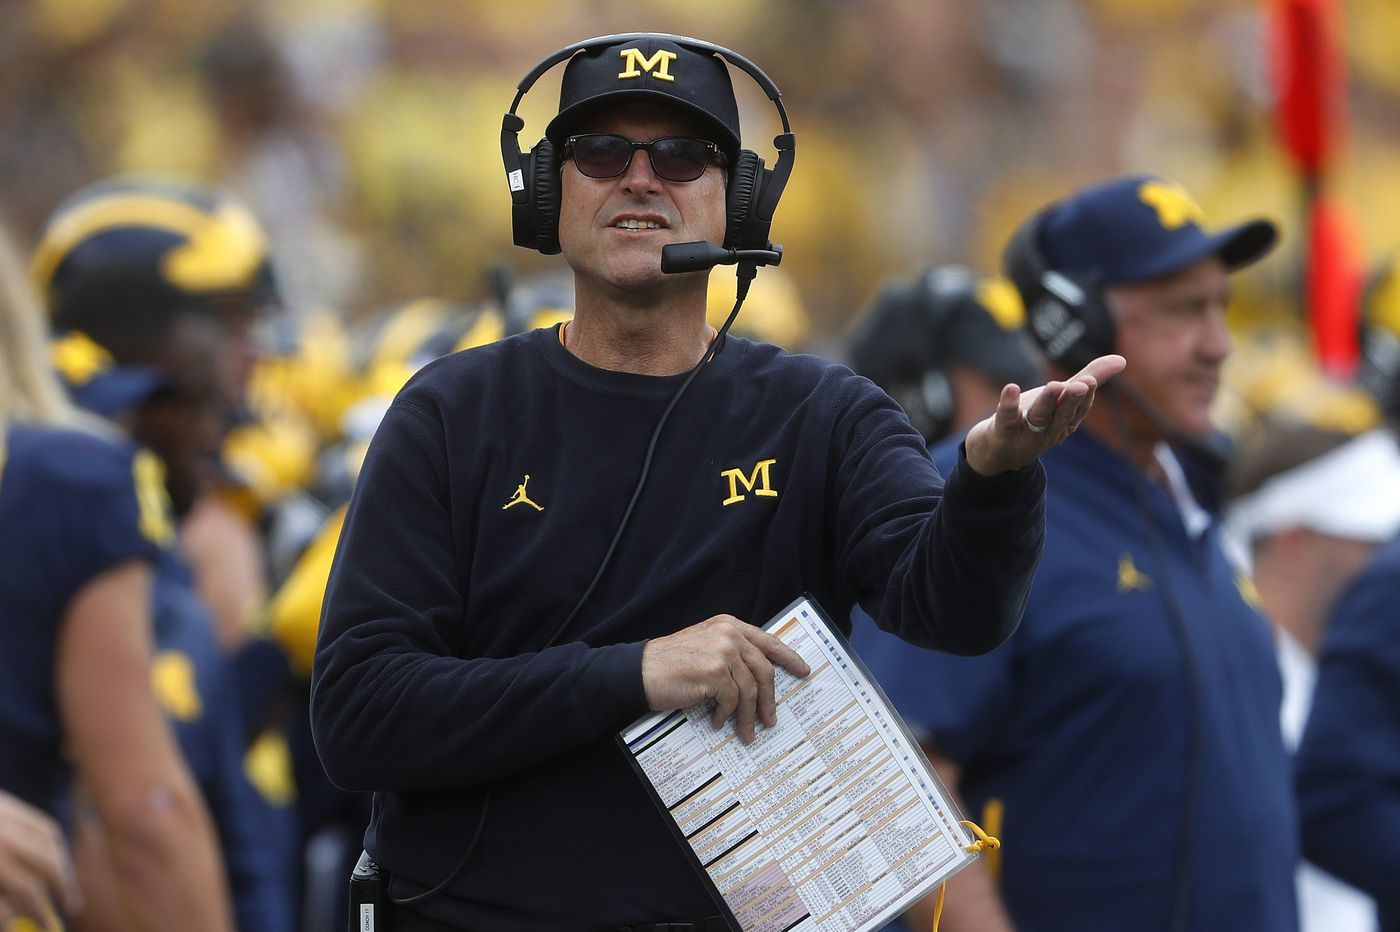 Michigan coach Jim Harbaugh not concerned over momentum loss going into Penn State game